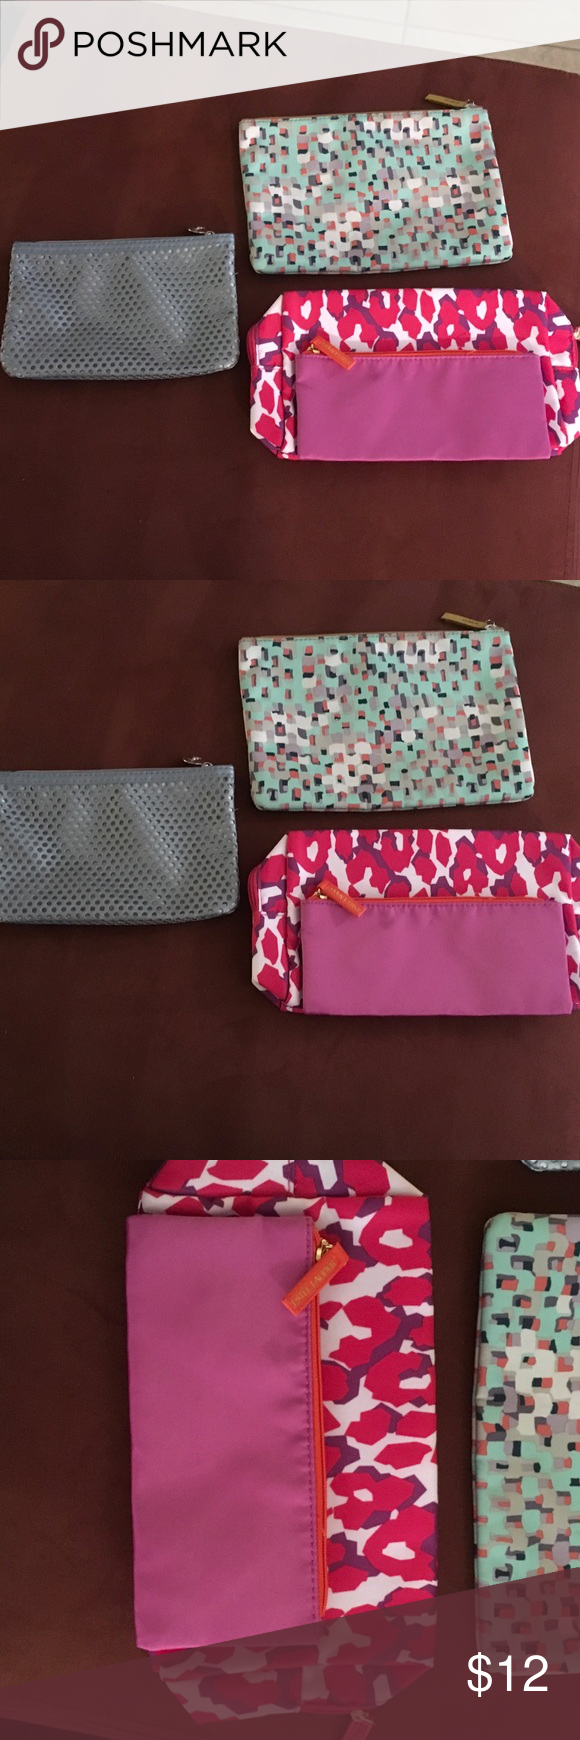 Three cosmetic/travel bags all new 1 Fossil Please three bags are brand-new and great to put in your purse or in your suitcase when traveling. None of them have been used. The pink one actually has another zippered bag that goes inside of it as displayed in the picture and is an Estée Lauder bag. The checkered one is a fossil bag and the gray one is in Ipsy bag. Estee Lauder Bags Cosmetic Bags & Cases